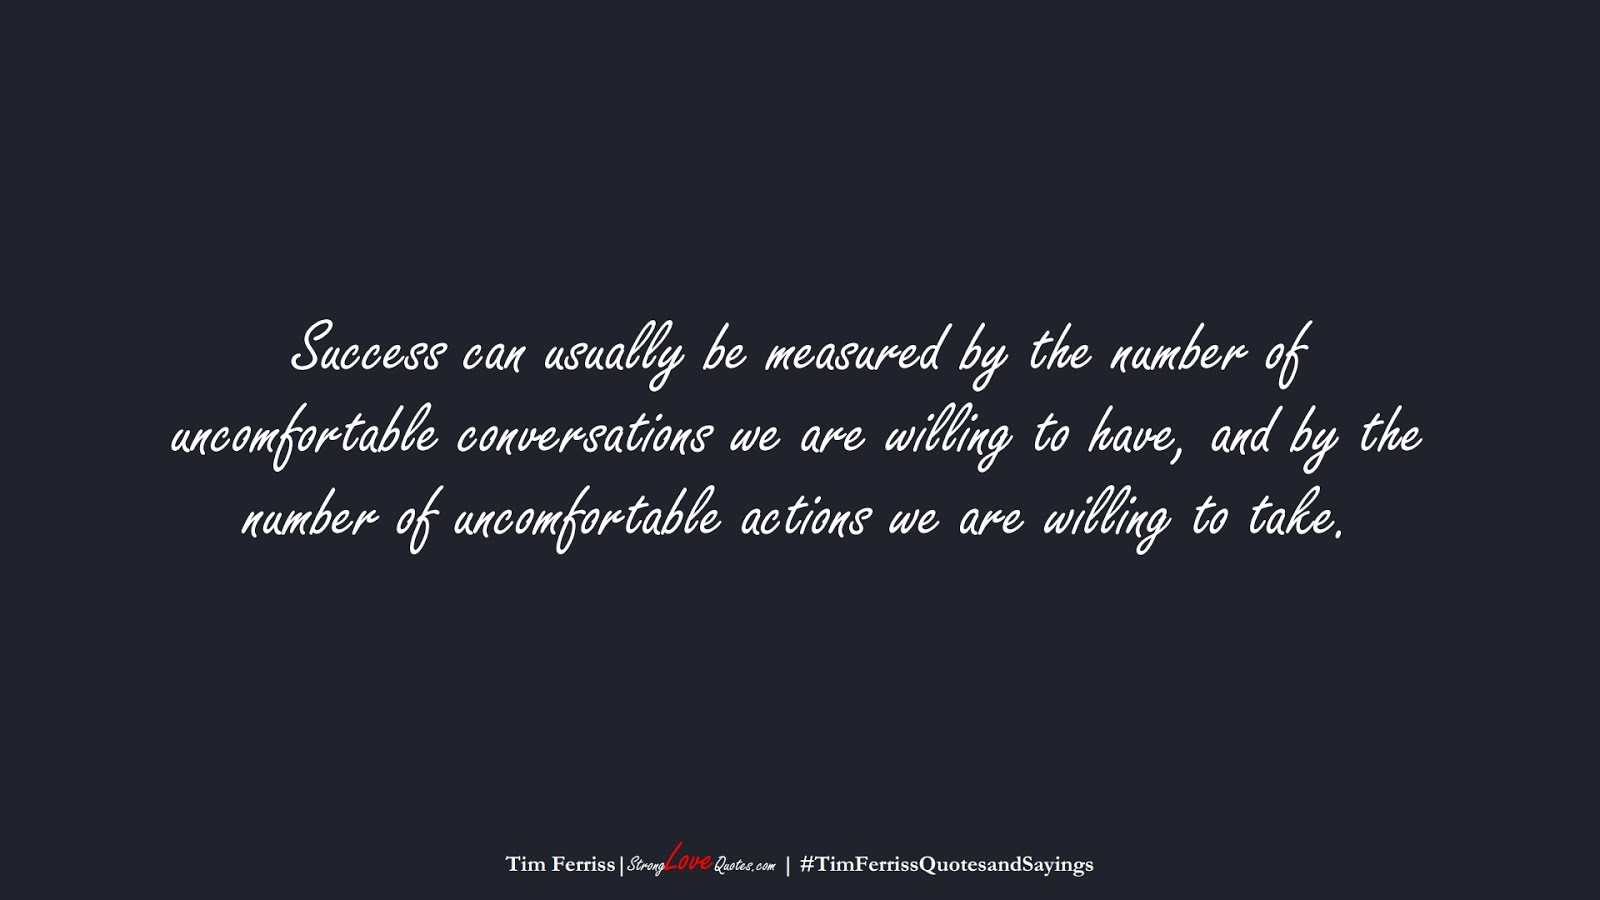 Success can usually be measured by the number of uncomfortable conversations we are willing to have, and by the number of uncomfortable actions we are willing to take. (Tim Ferriss);  #TimFerrissQuotesandSayings